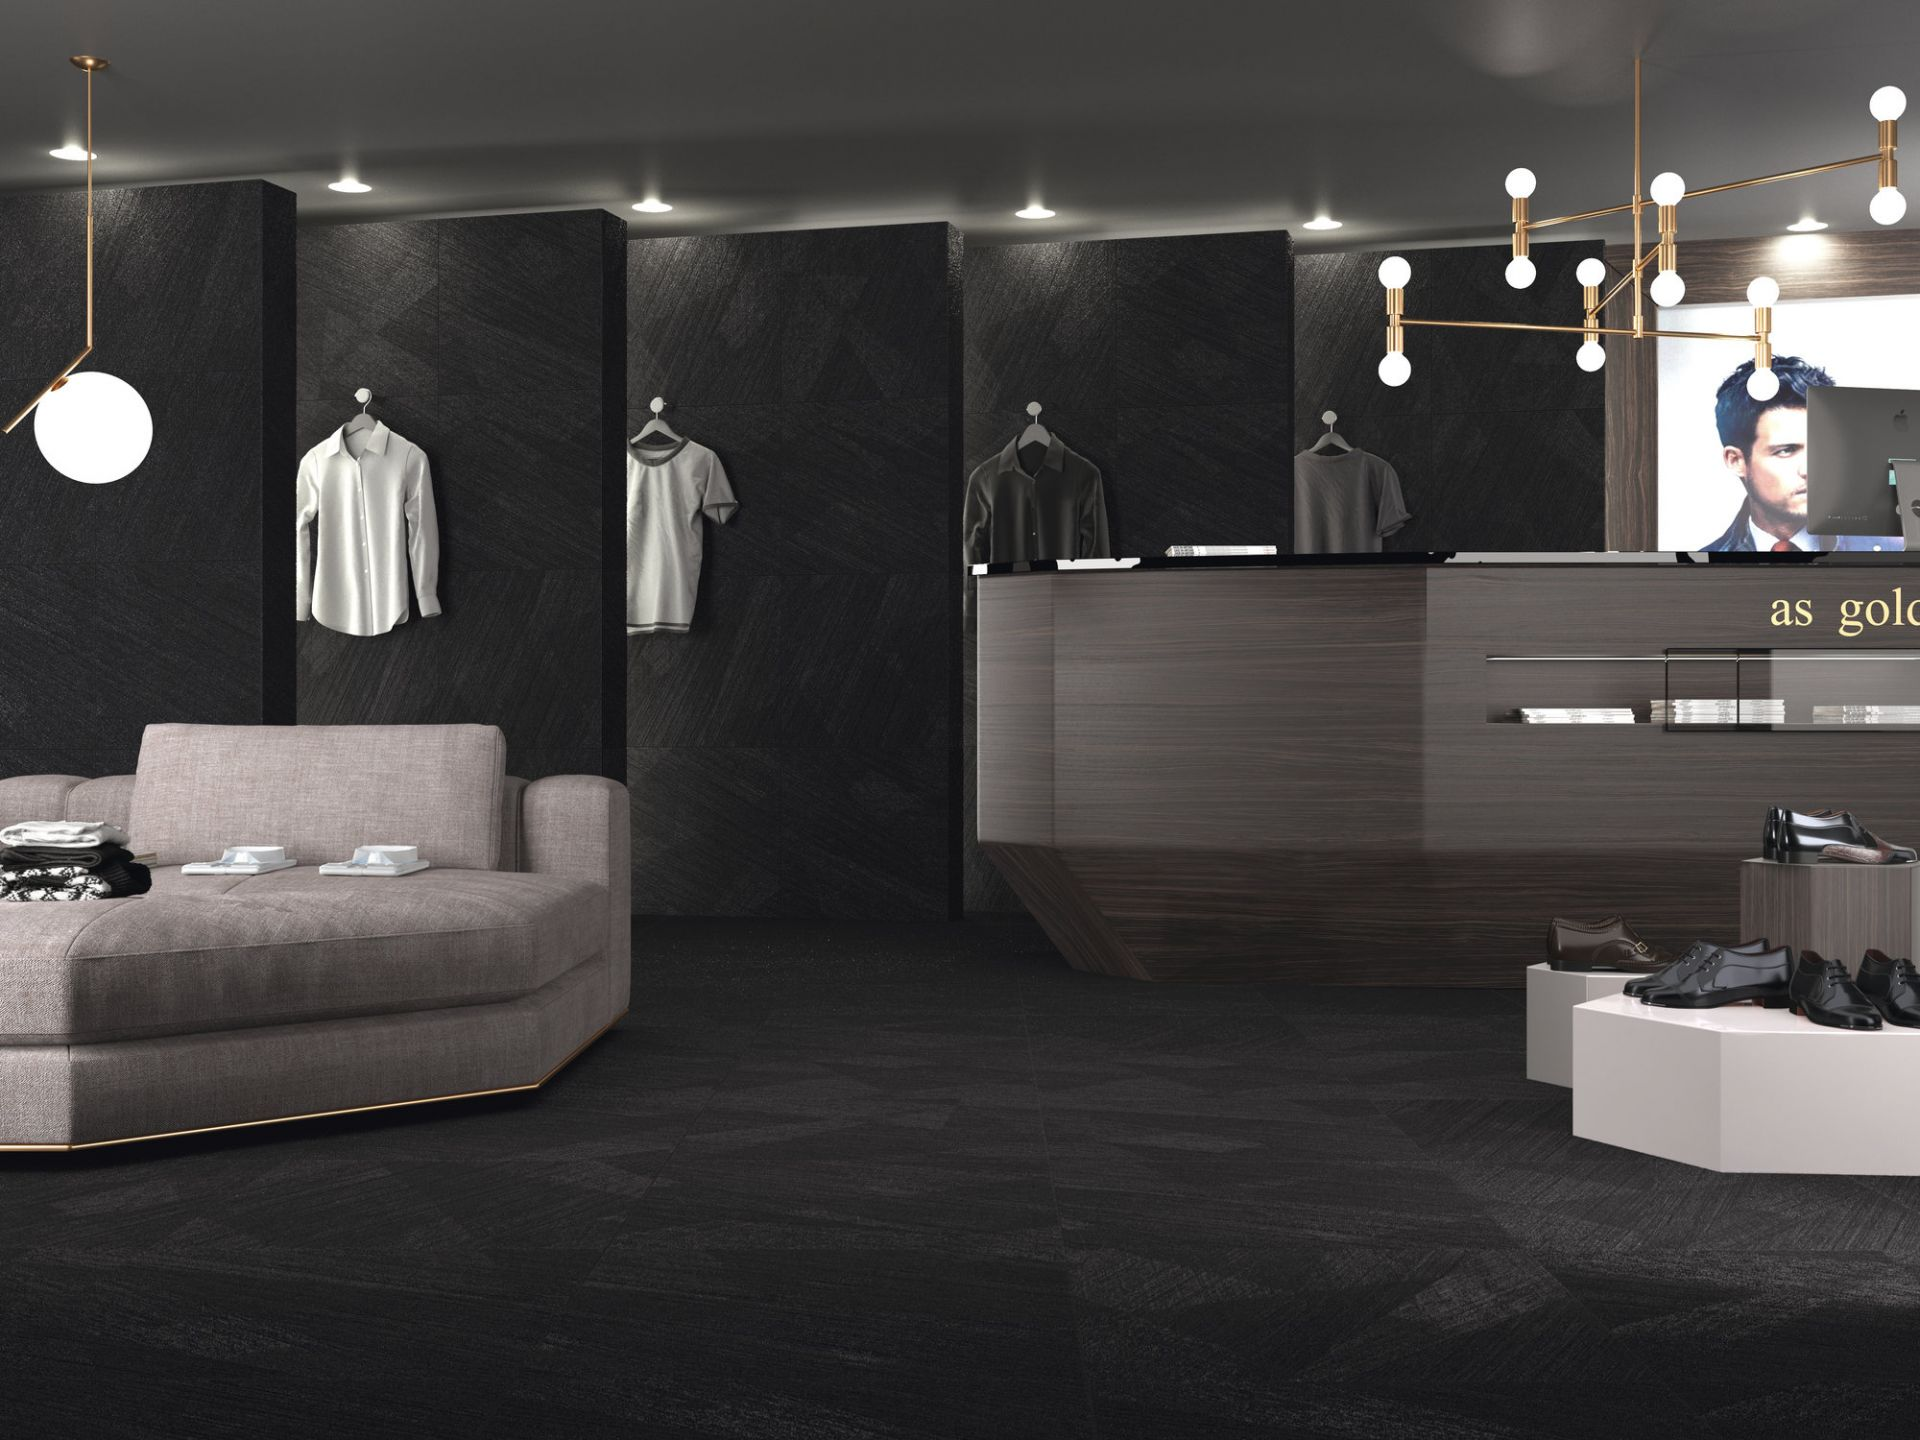 top carrelage beziers cool carrelage adh sif leroy merlin avec salle best of carrelage adh sif. Black Bedroom Furniture Sets. Home Design Ideas